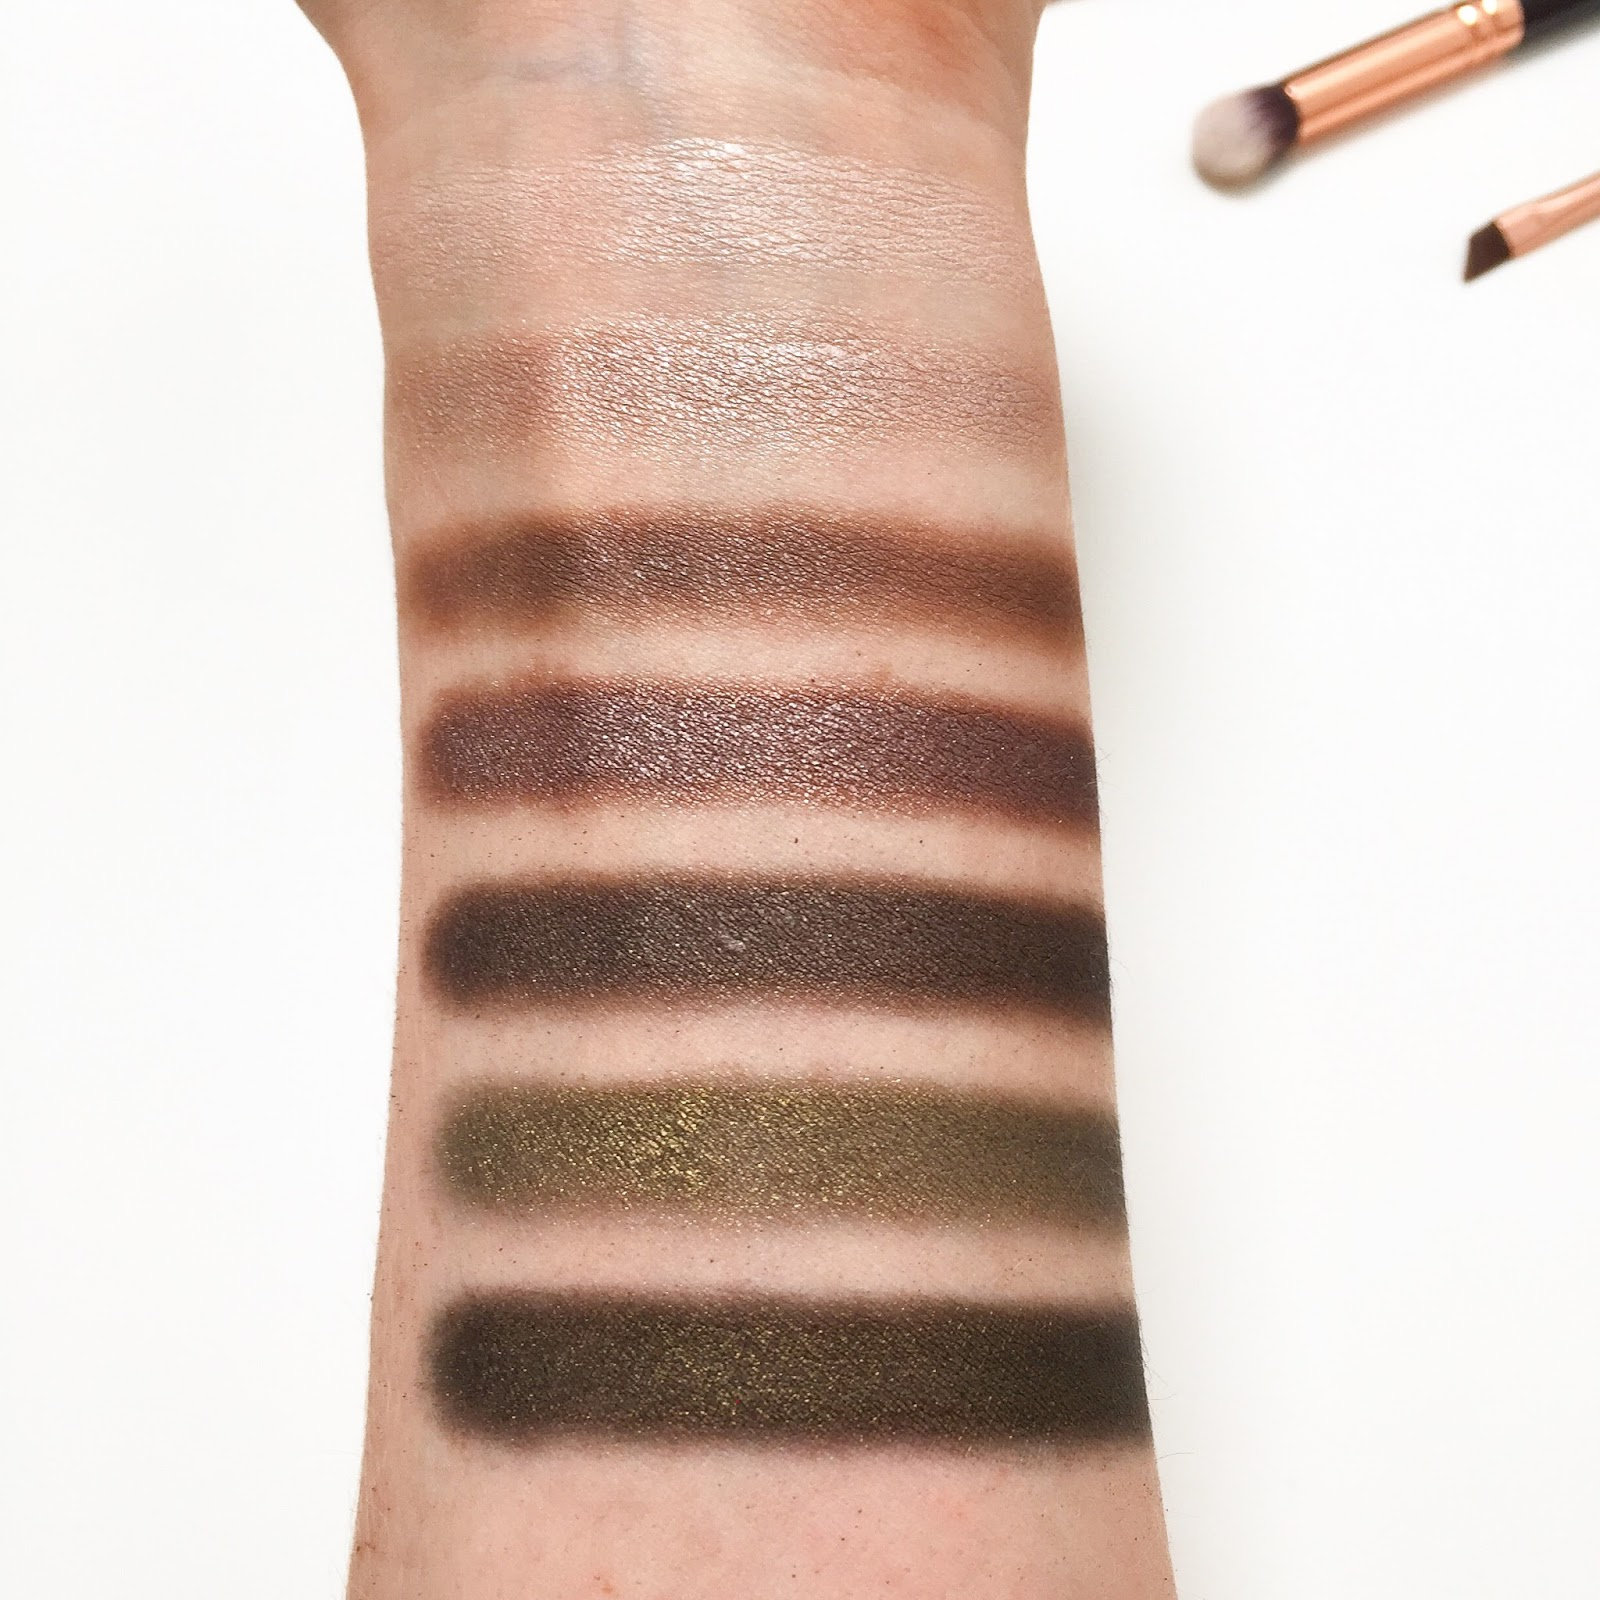 Laura Geller The Delectables Eyeshadow Palette In Delicious Shades